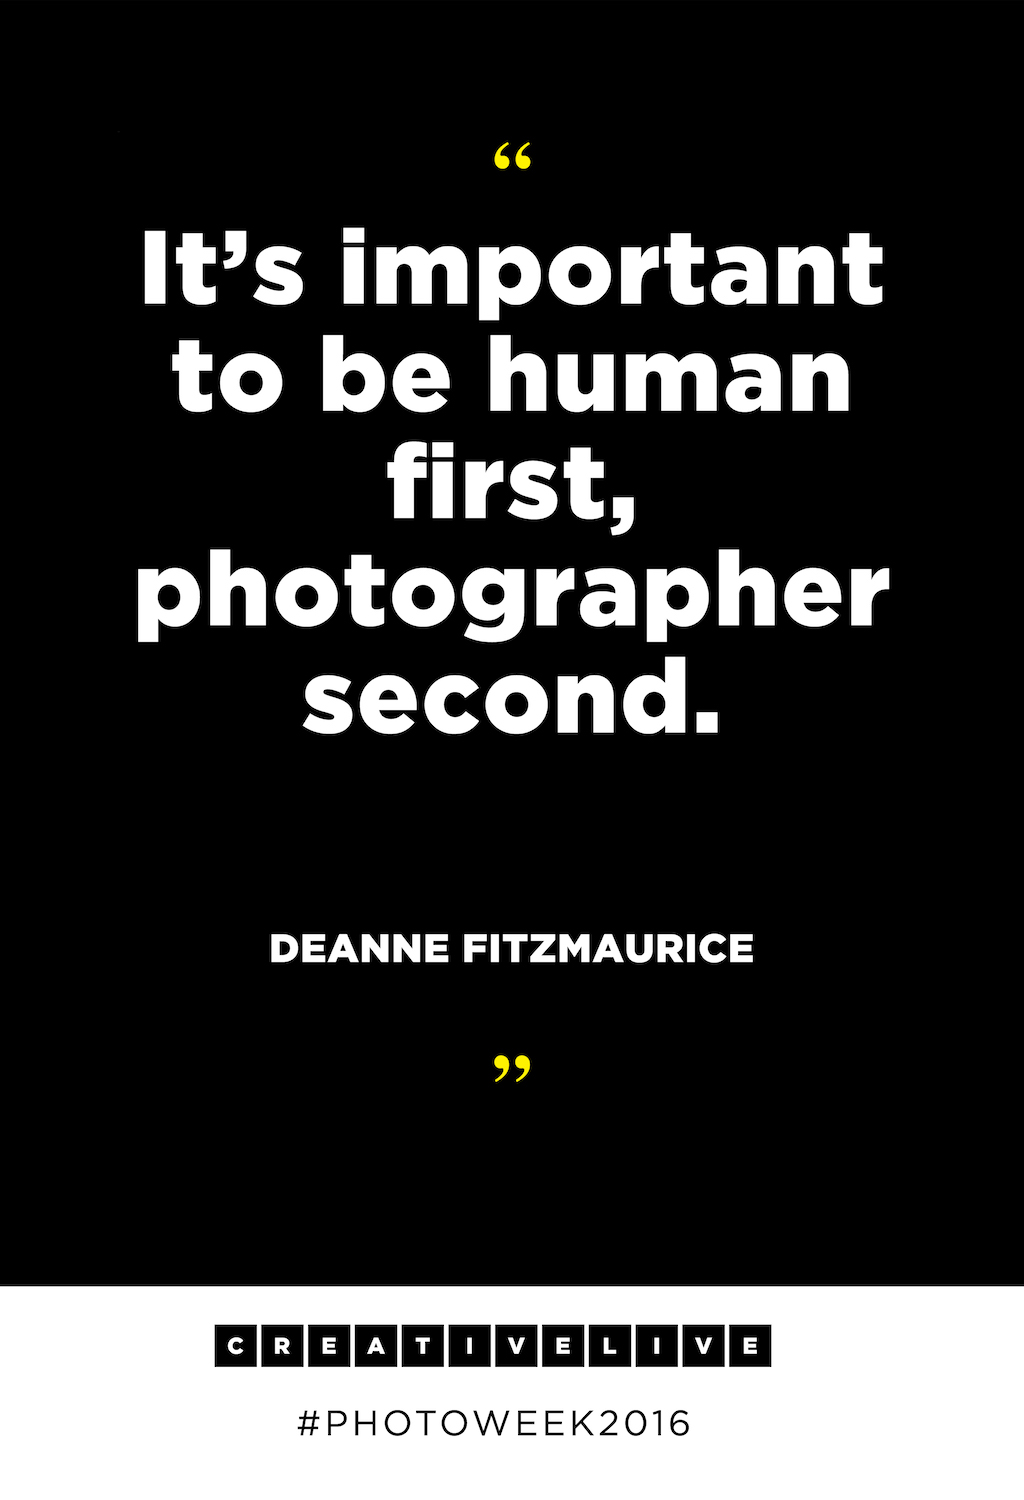 Get more quotes from Photo Week 2016 at creativelive.com!